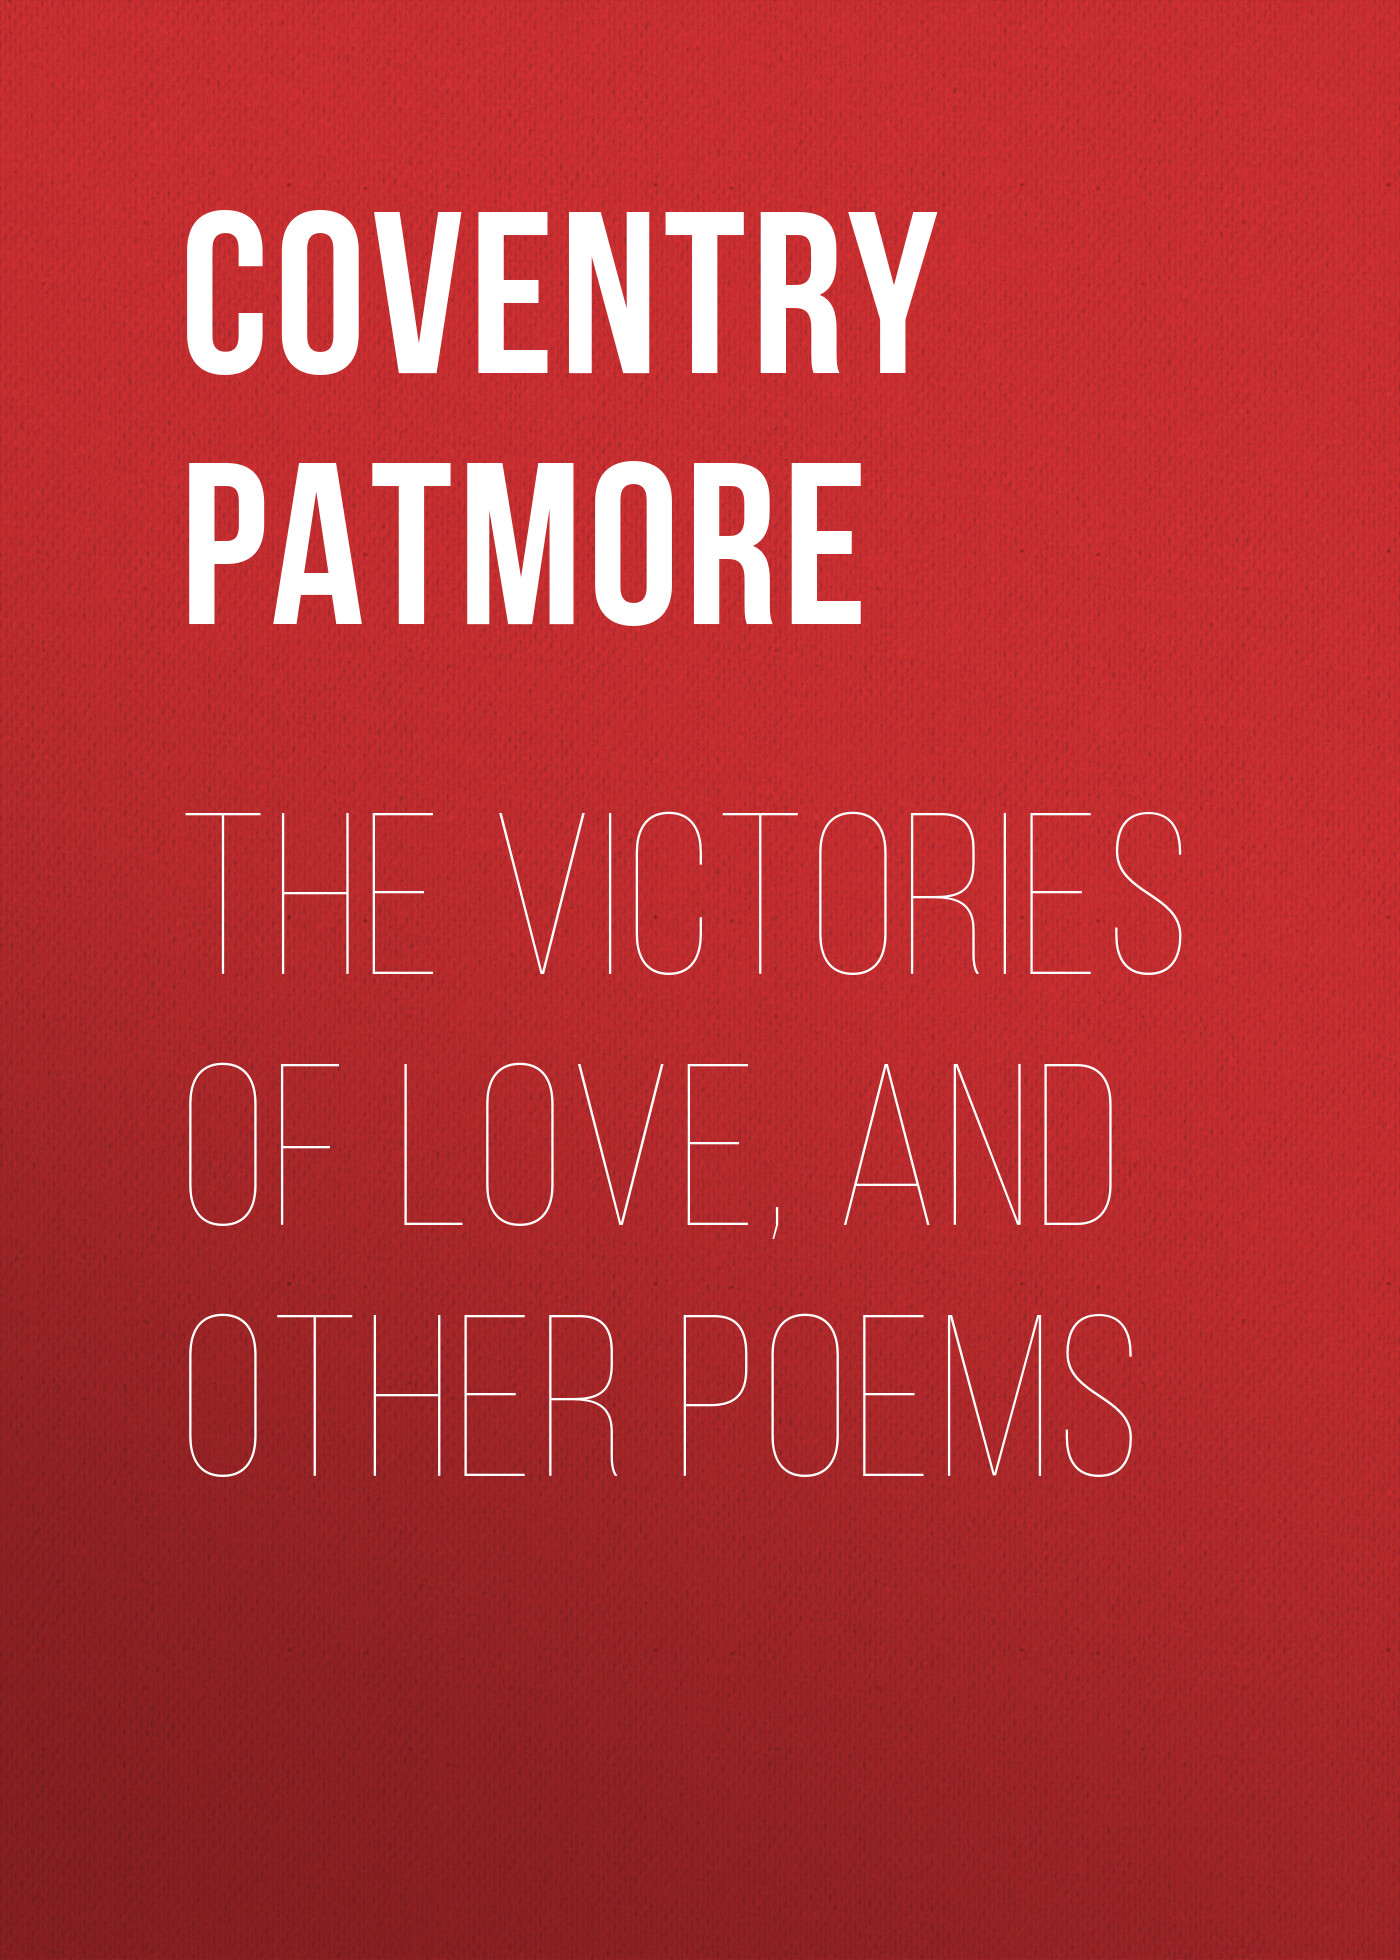 лучшая цена Coventry Patmore The Victories of Love, and Other Poems